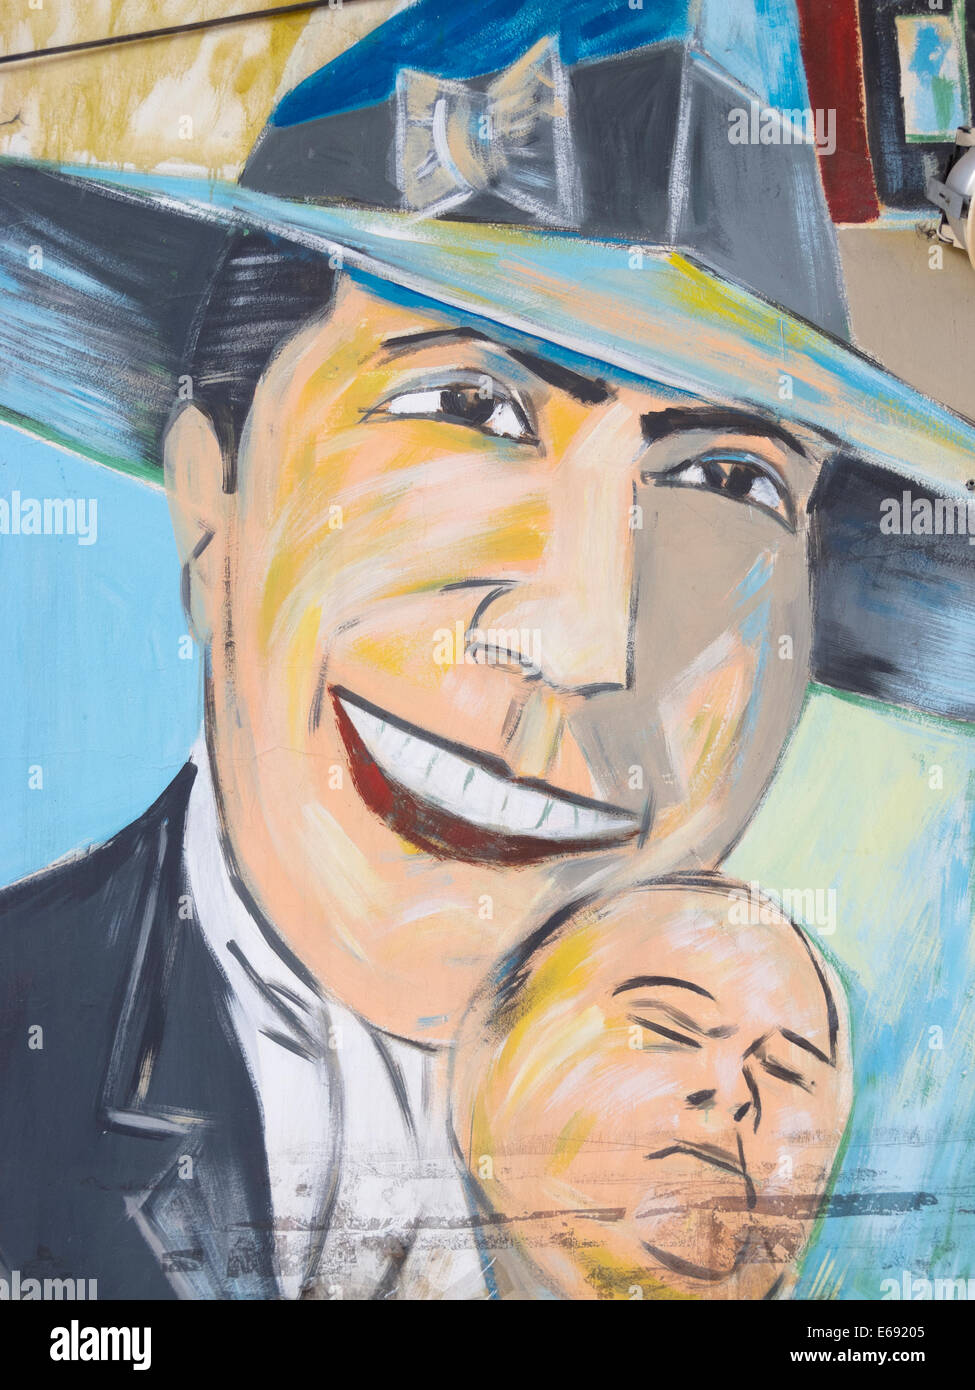 Tribute to Carlos Gardel in San Telmo Market, Buenos Aires, Argentina. Carlos Gardel is the most famous tango singer - Stock Image